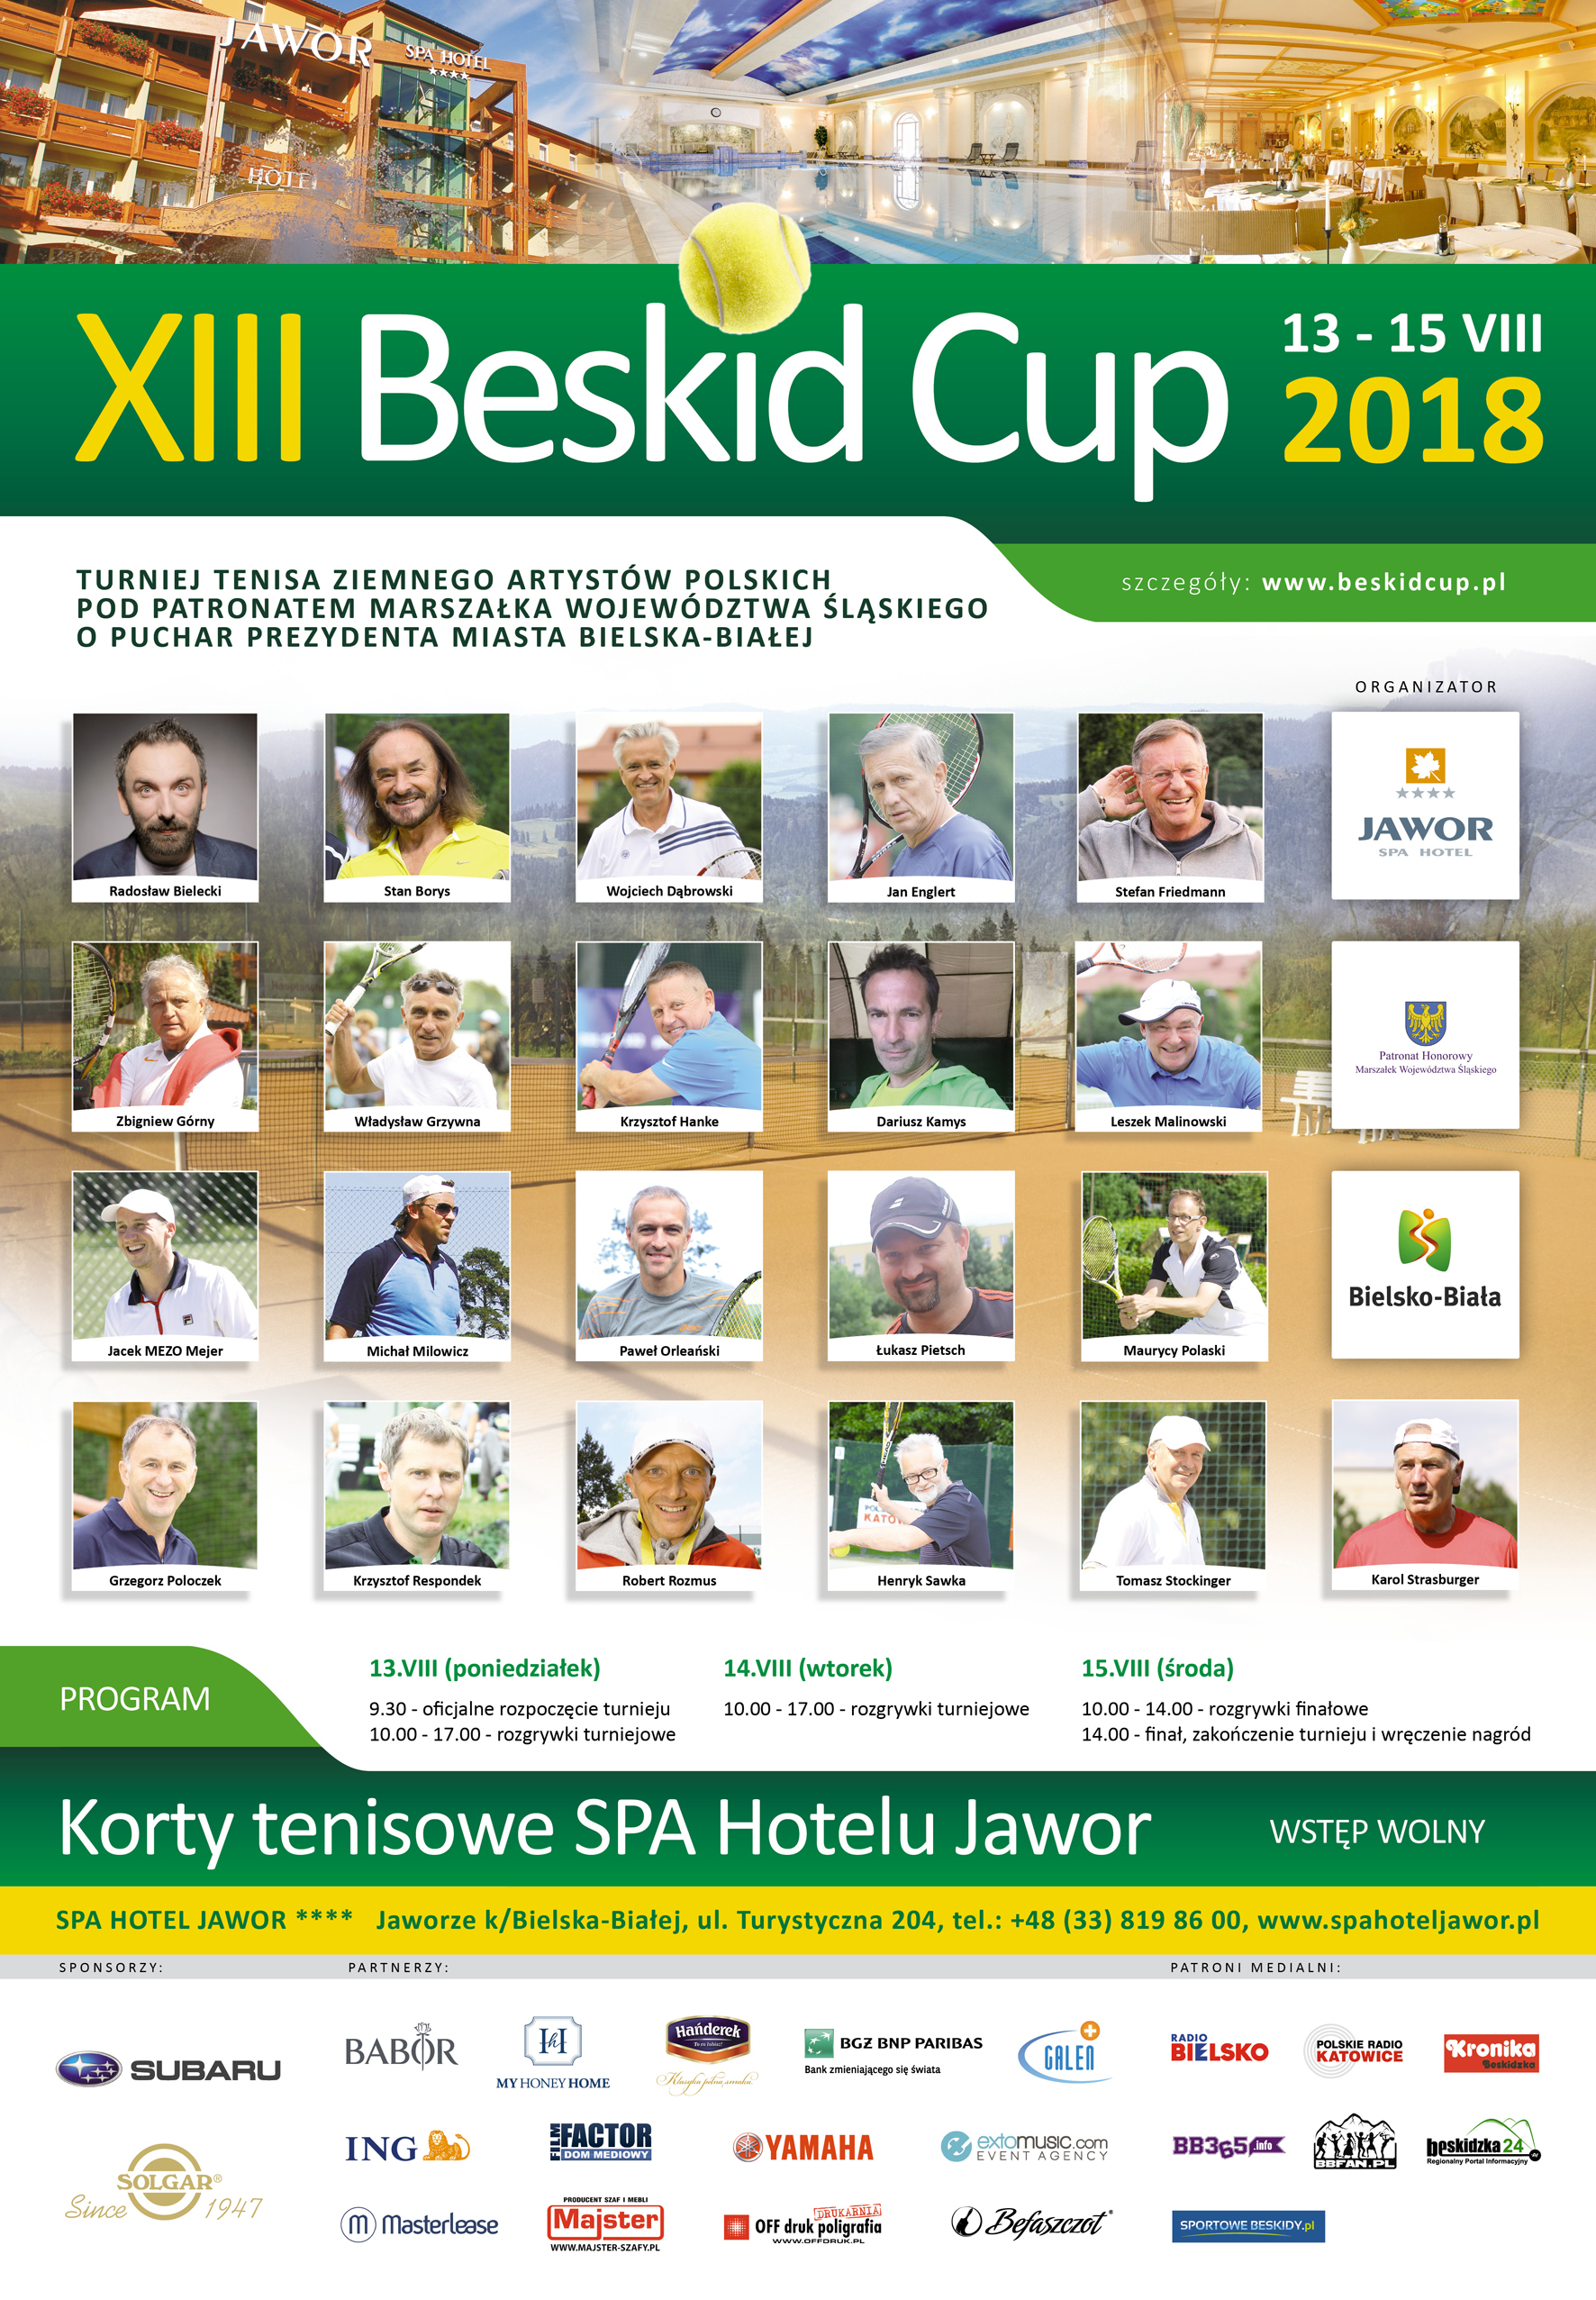 Xiii Beskid Cup